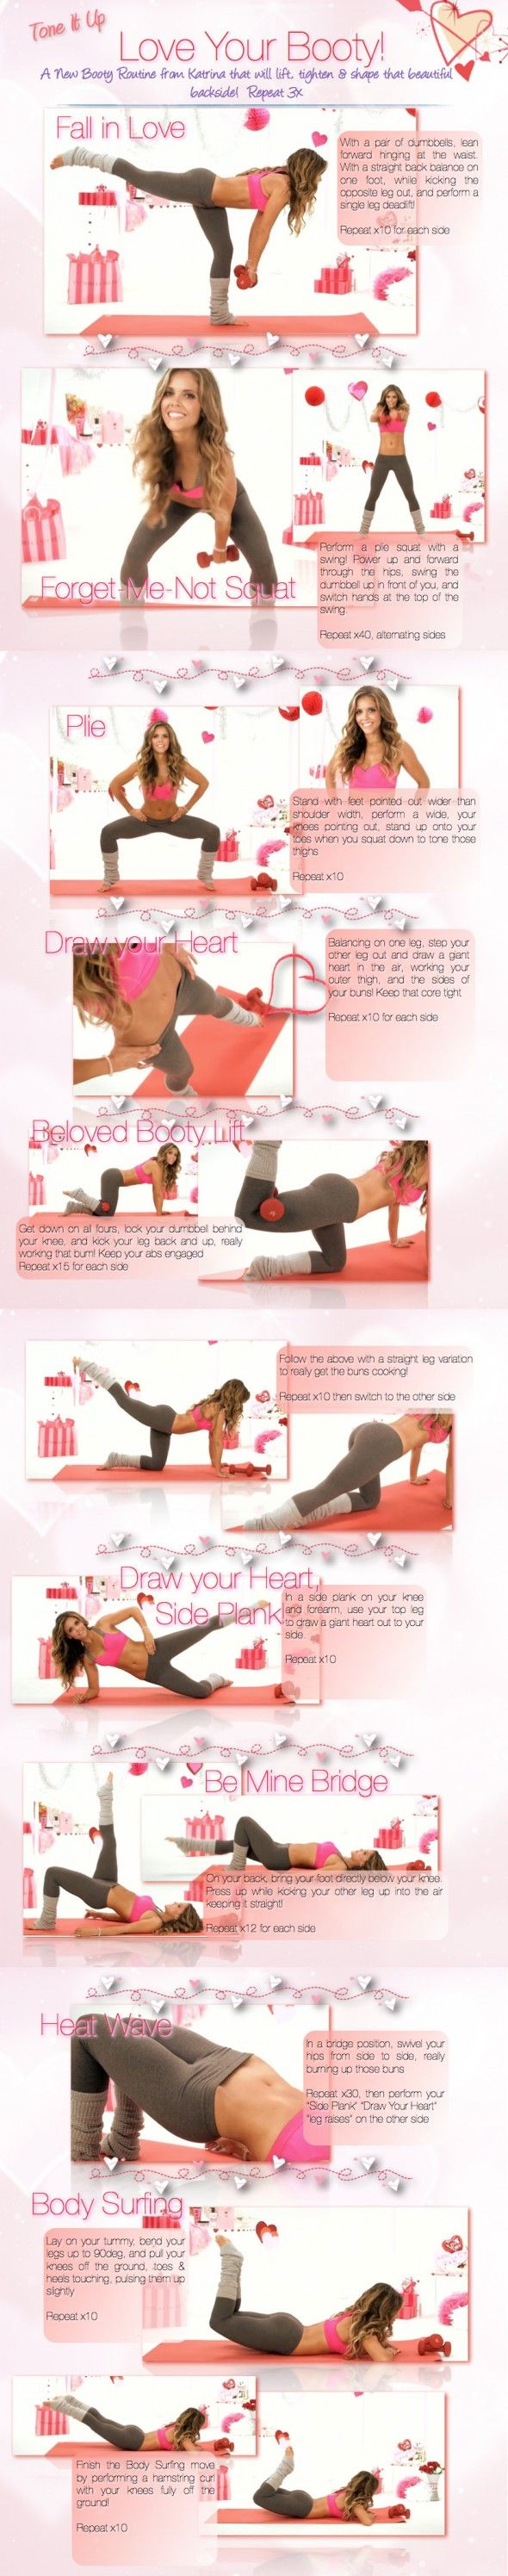 love your booty! these moves will lift & sculpt your buyy and tone the thighs. working major muscle groups like your thighs and rear also burns major calories... bonus!